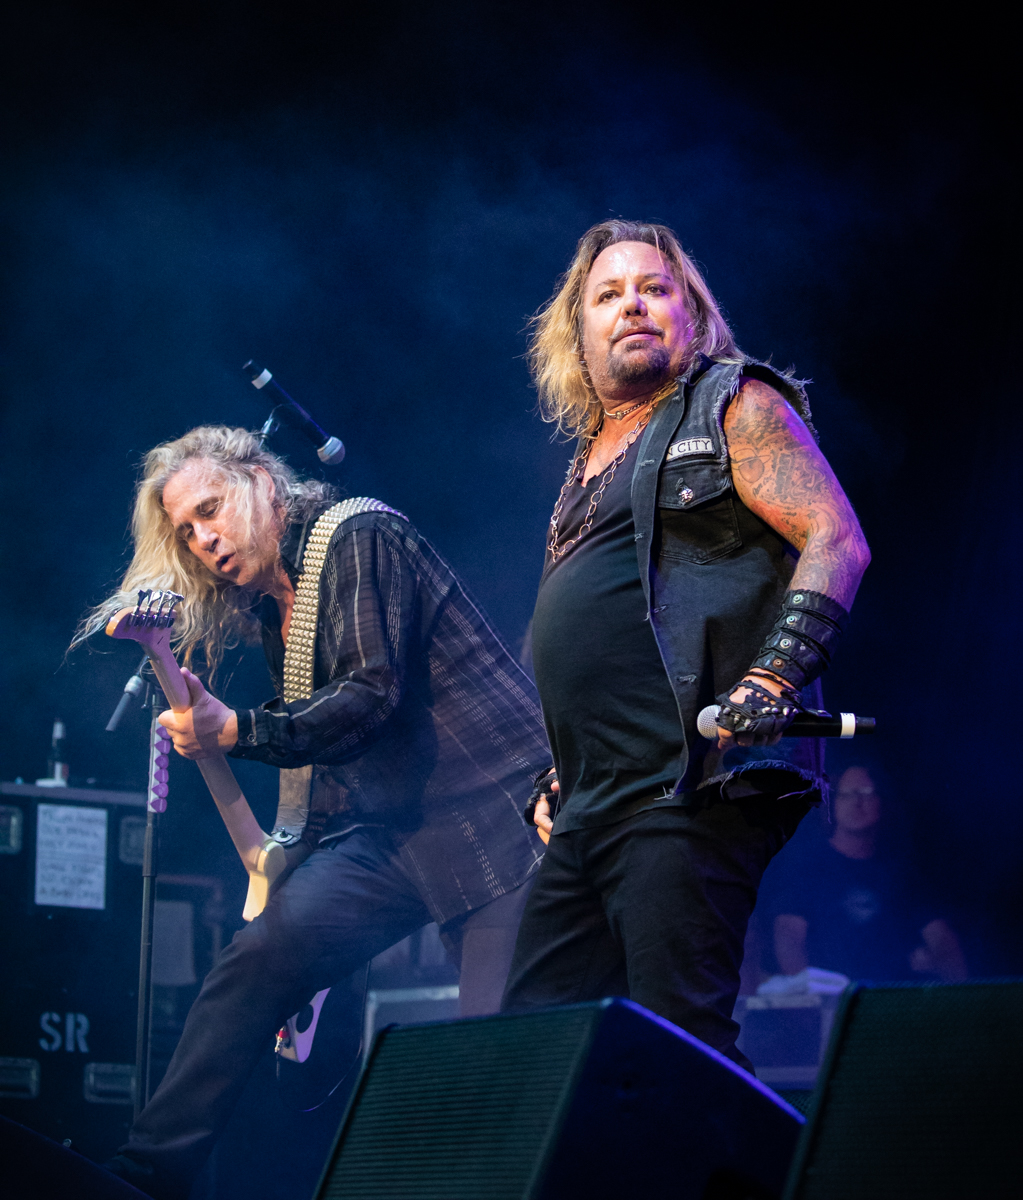 Dana Strum and Vince Neil perform at Hollywood Casino Amphitheatre in Tinley Park, IL on 06/07/2019.